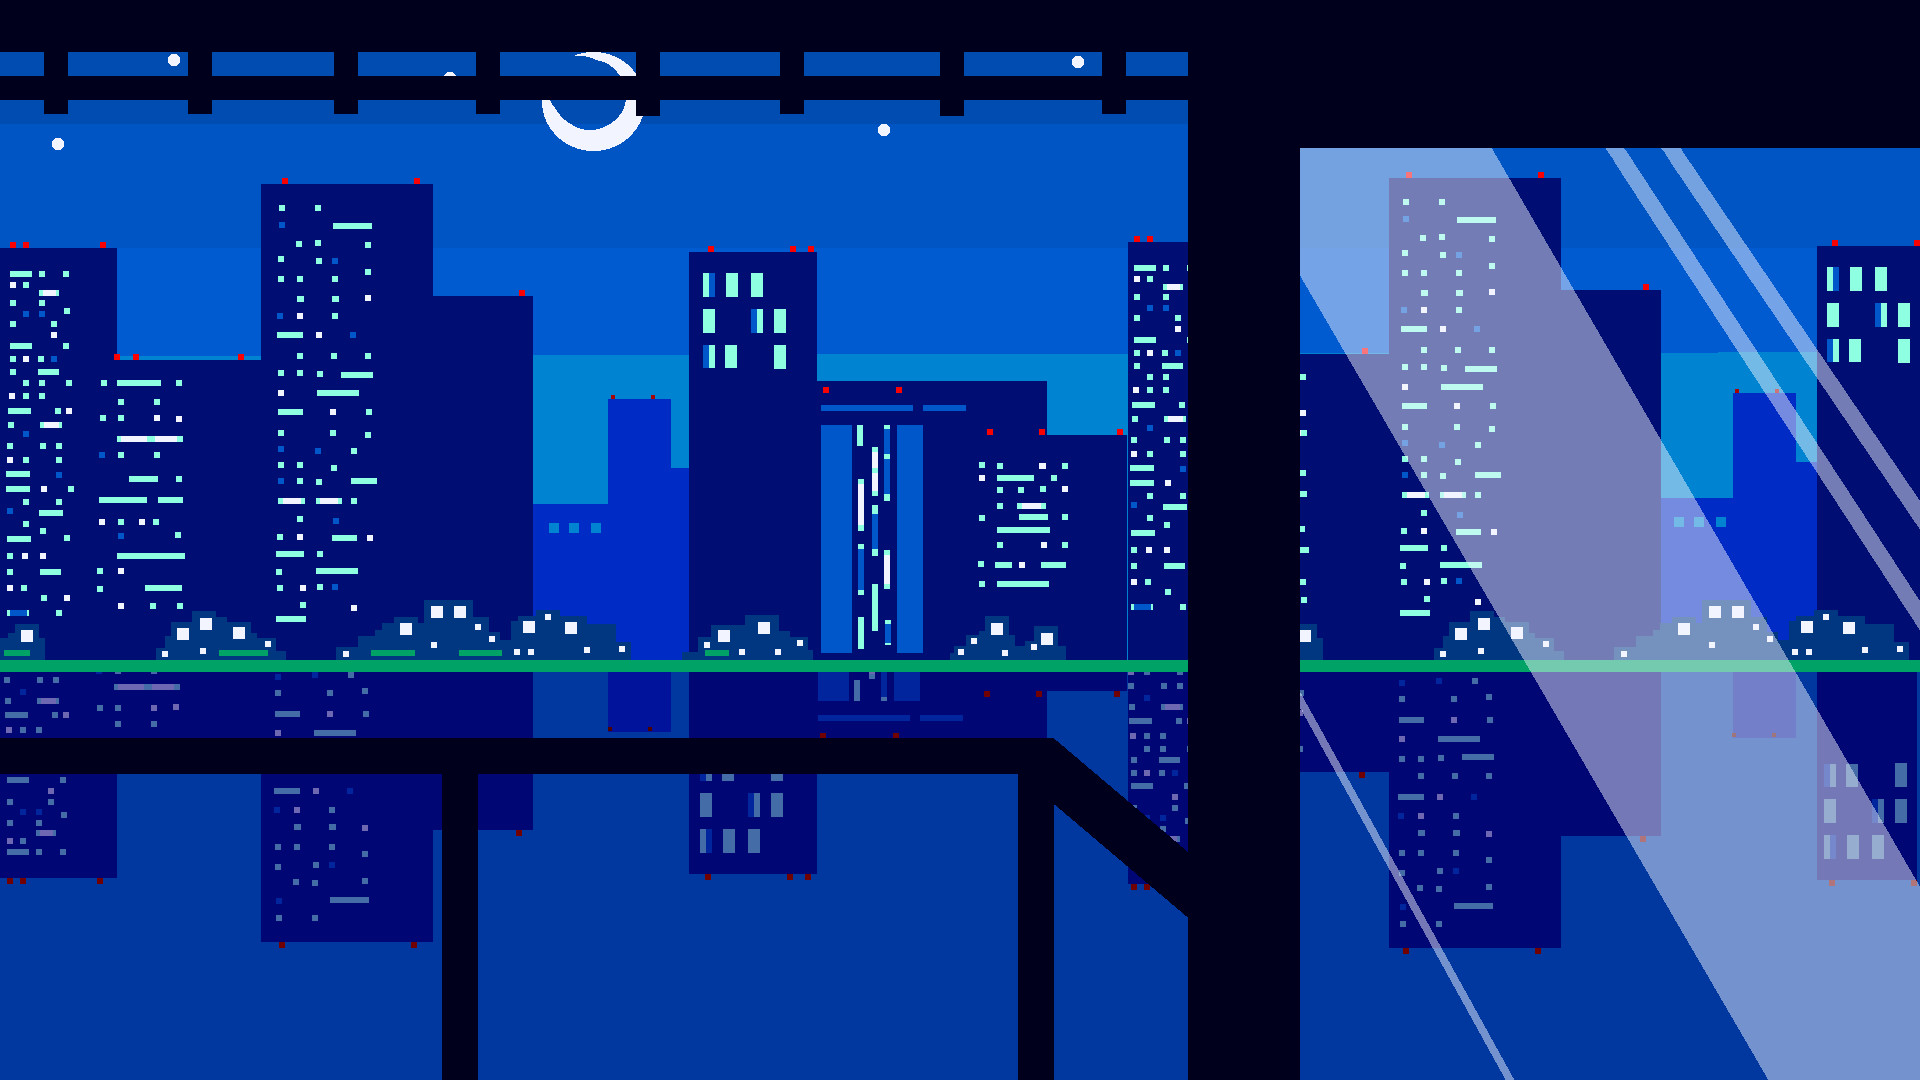 Lo Fi Aesthetic Wallpaper Posted By Ryan Cunningham